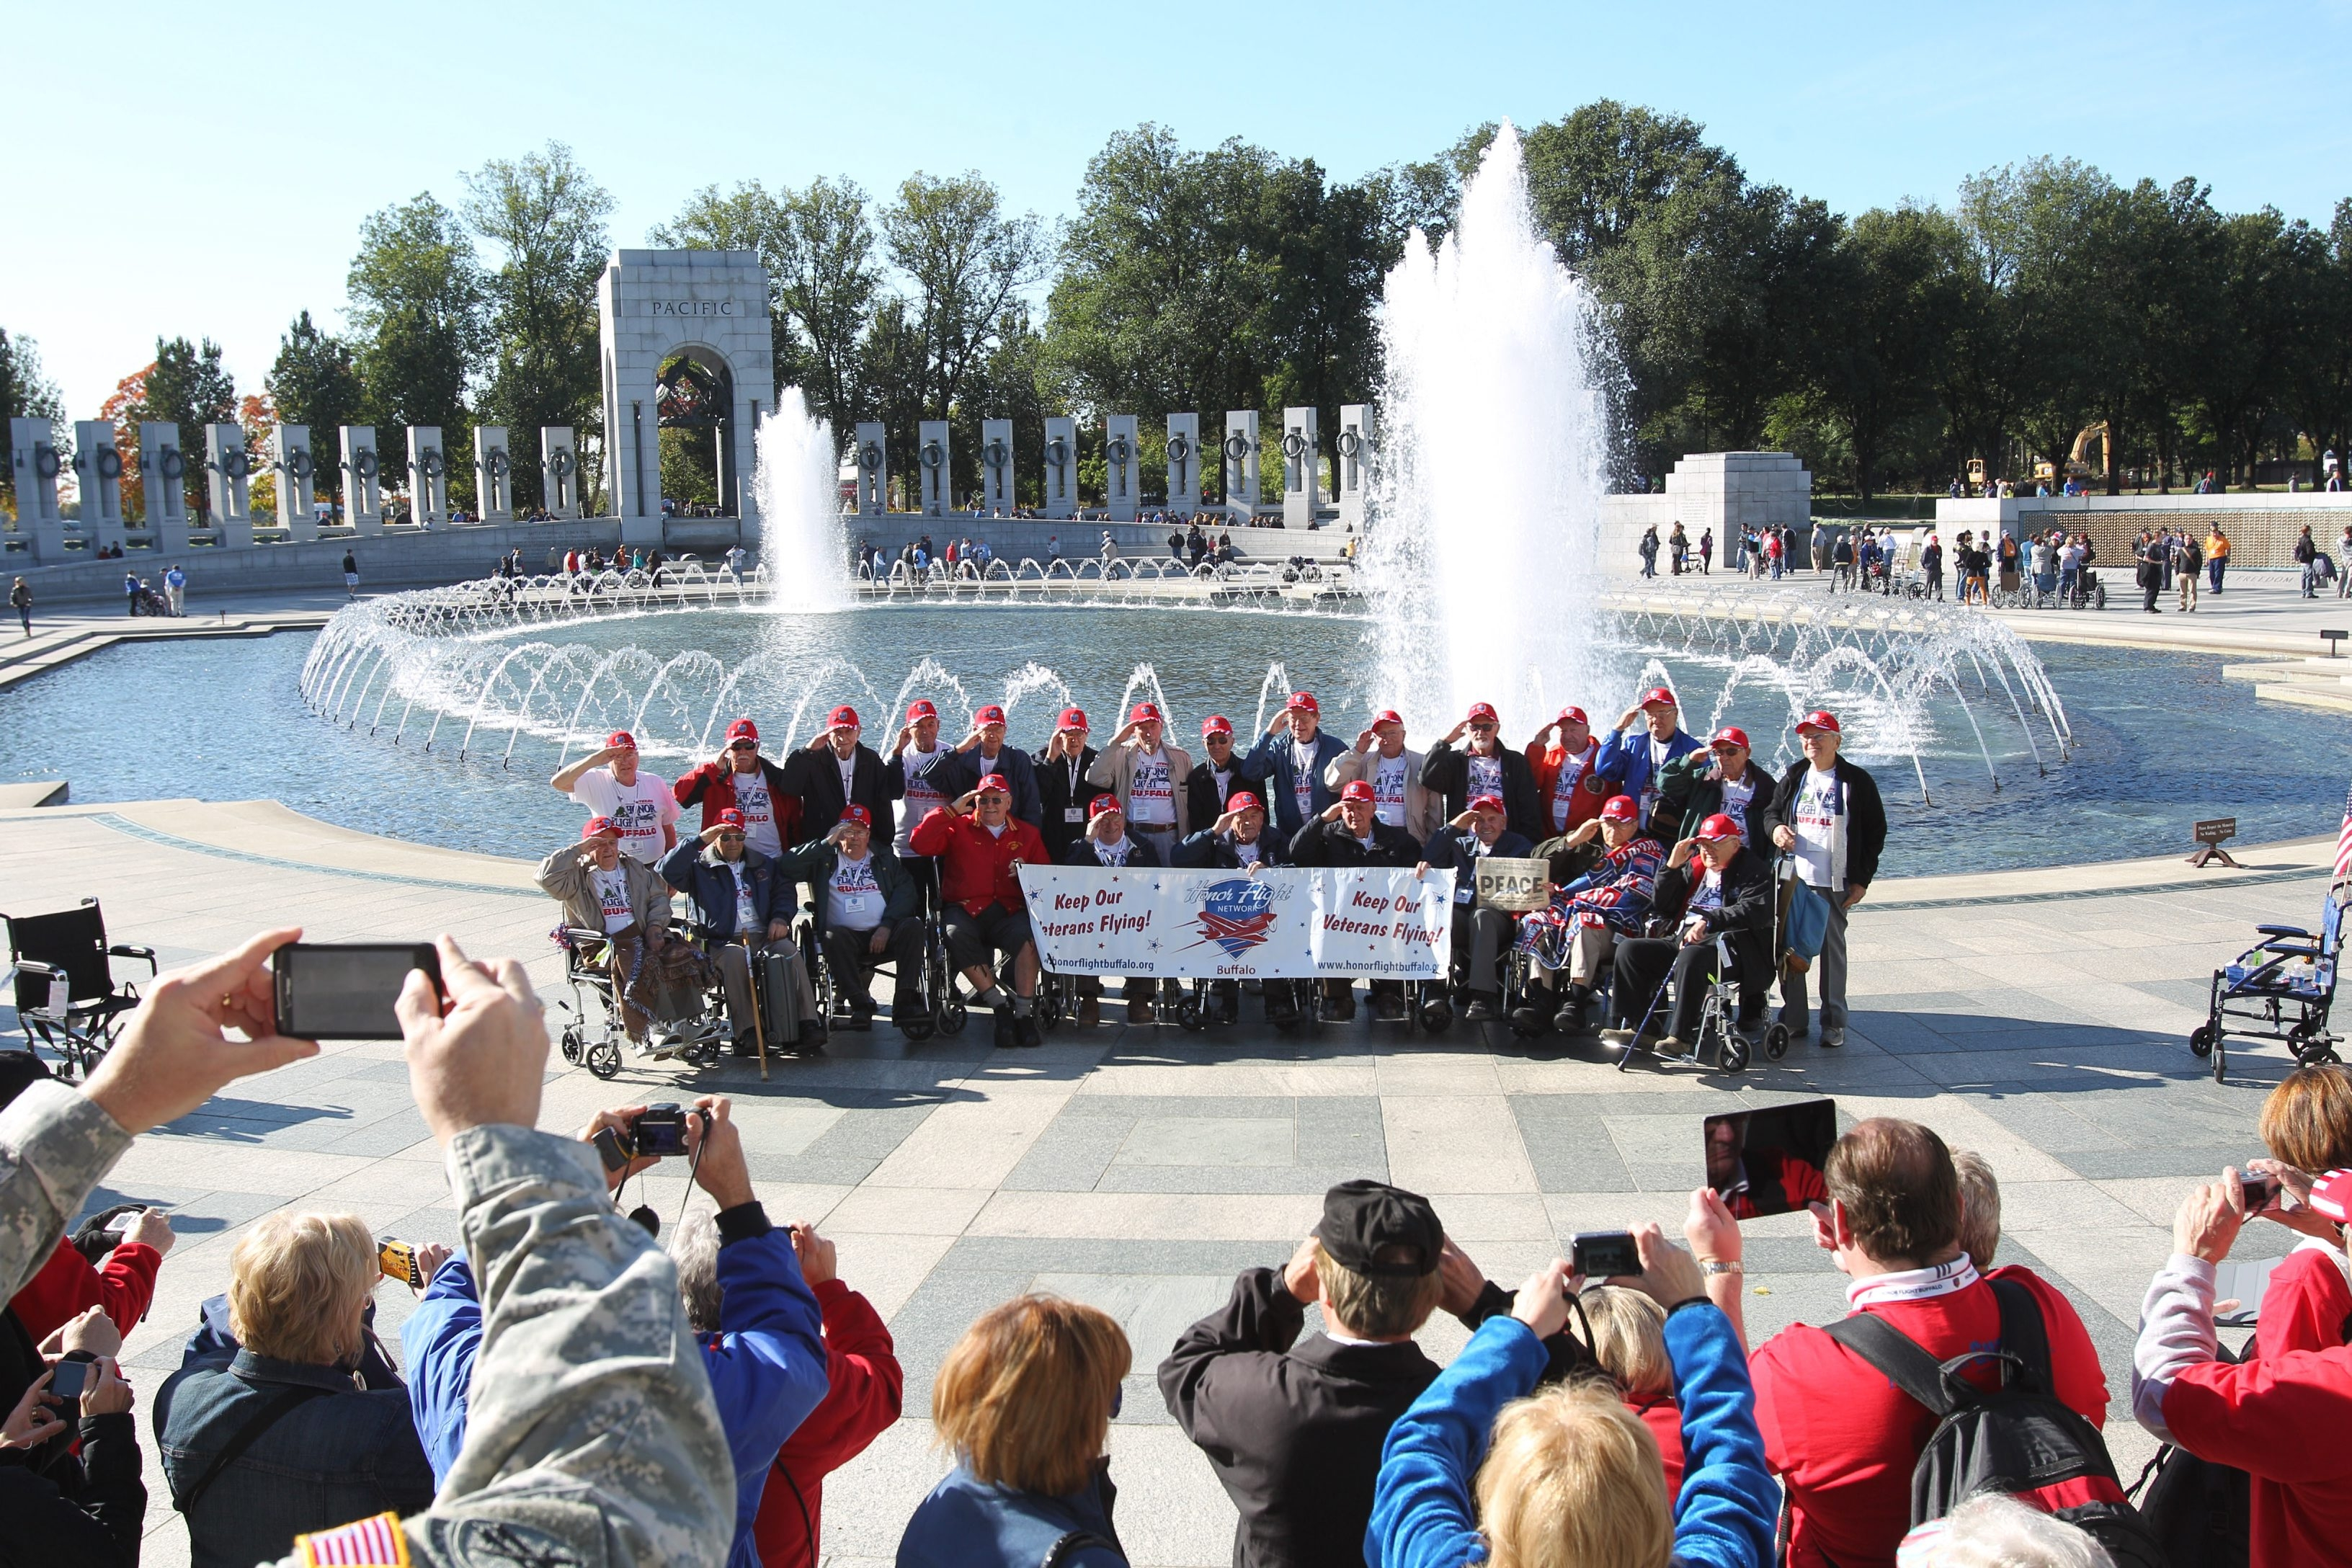 World War II veterans were taken to see the WWII memorial as well as other memorials on a one-day trip with Honor Flight to Washington, D.C., in 2012.  Family and friends accompanying the vets take a group photo. (Sharon Cantillon/Buffalo News file photo)